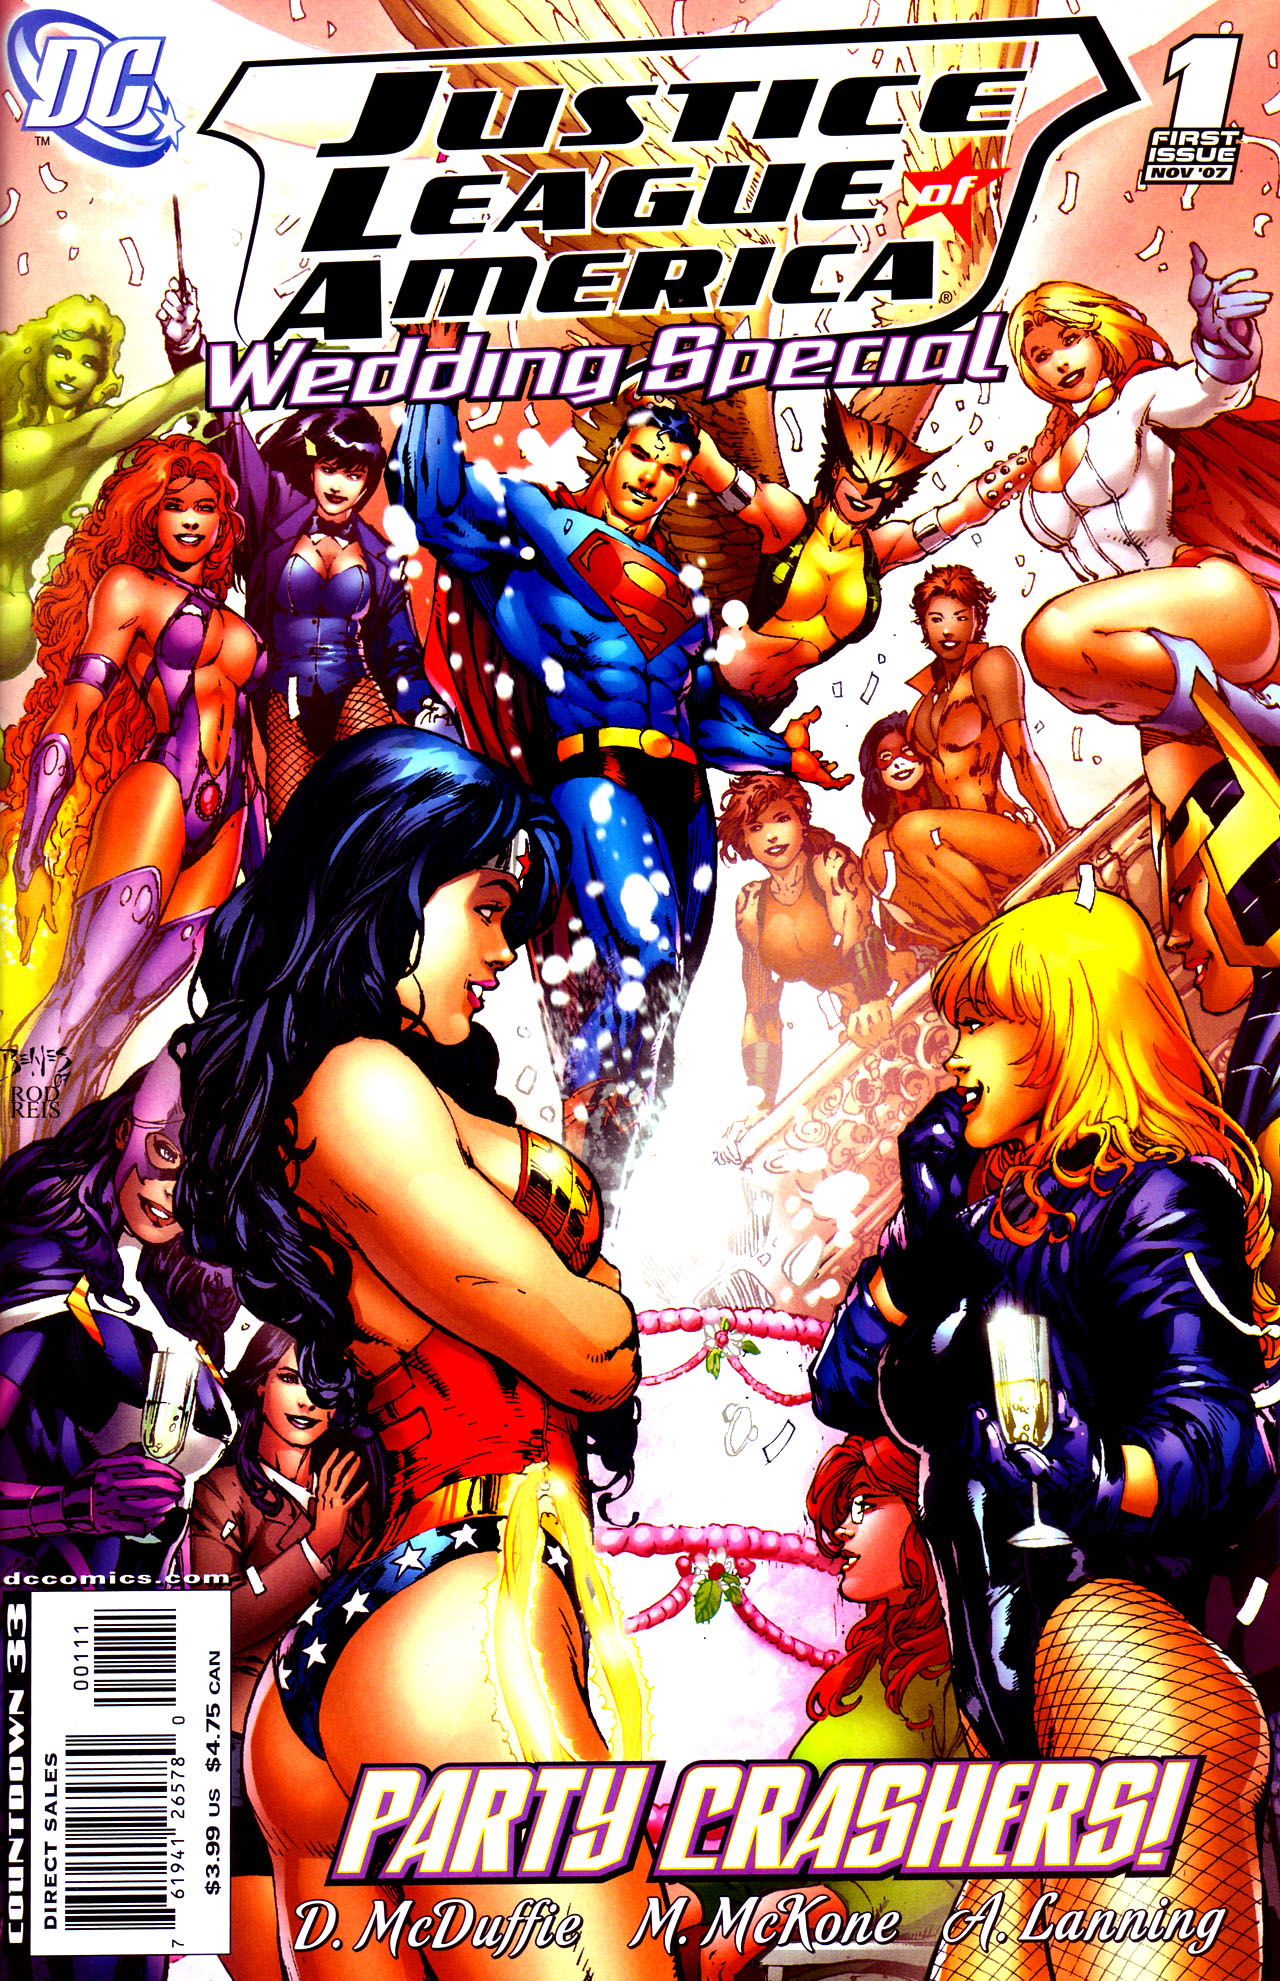 Justice League of America Wedding Special Vol 1 1